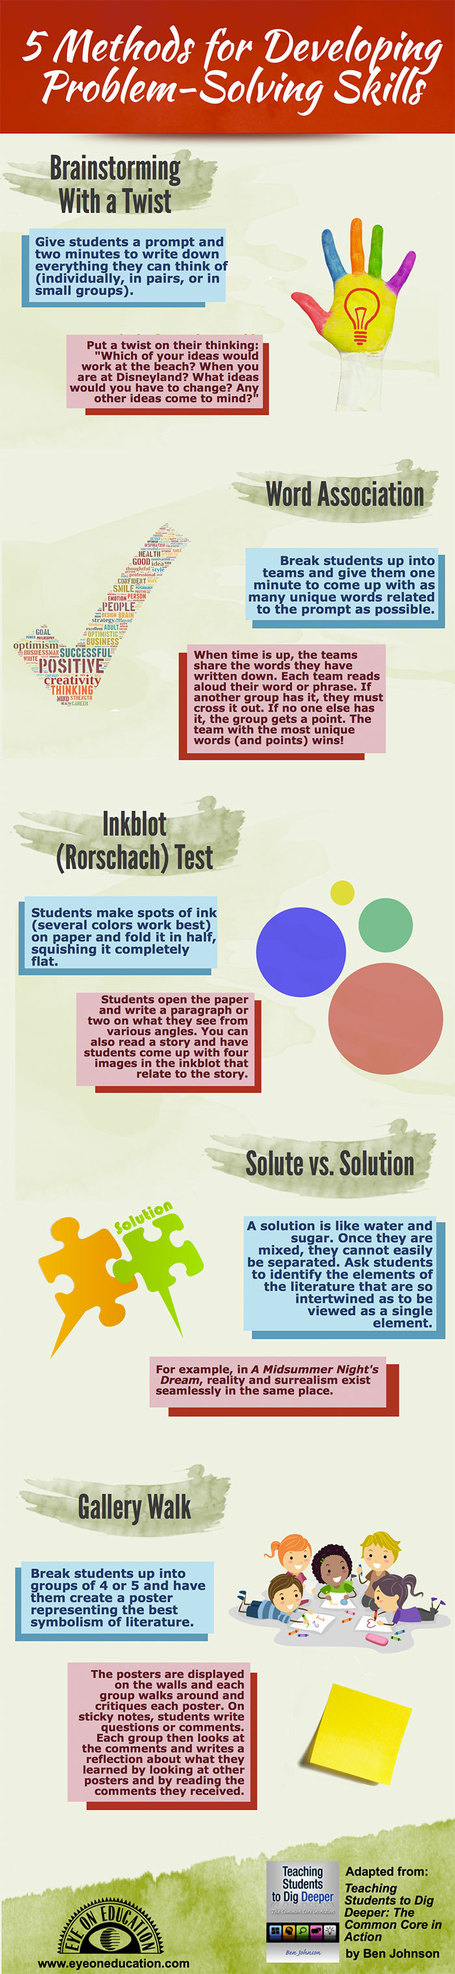 5 Methods for Developing Problem-Solving Skills [Infographic] | Teachning, Learning and Develpoing with Technology | Scoop.it